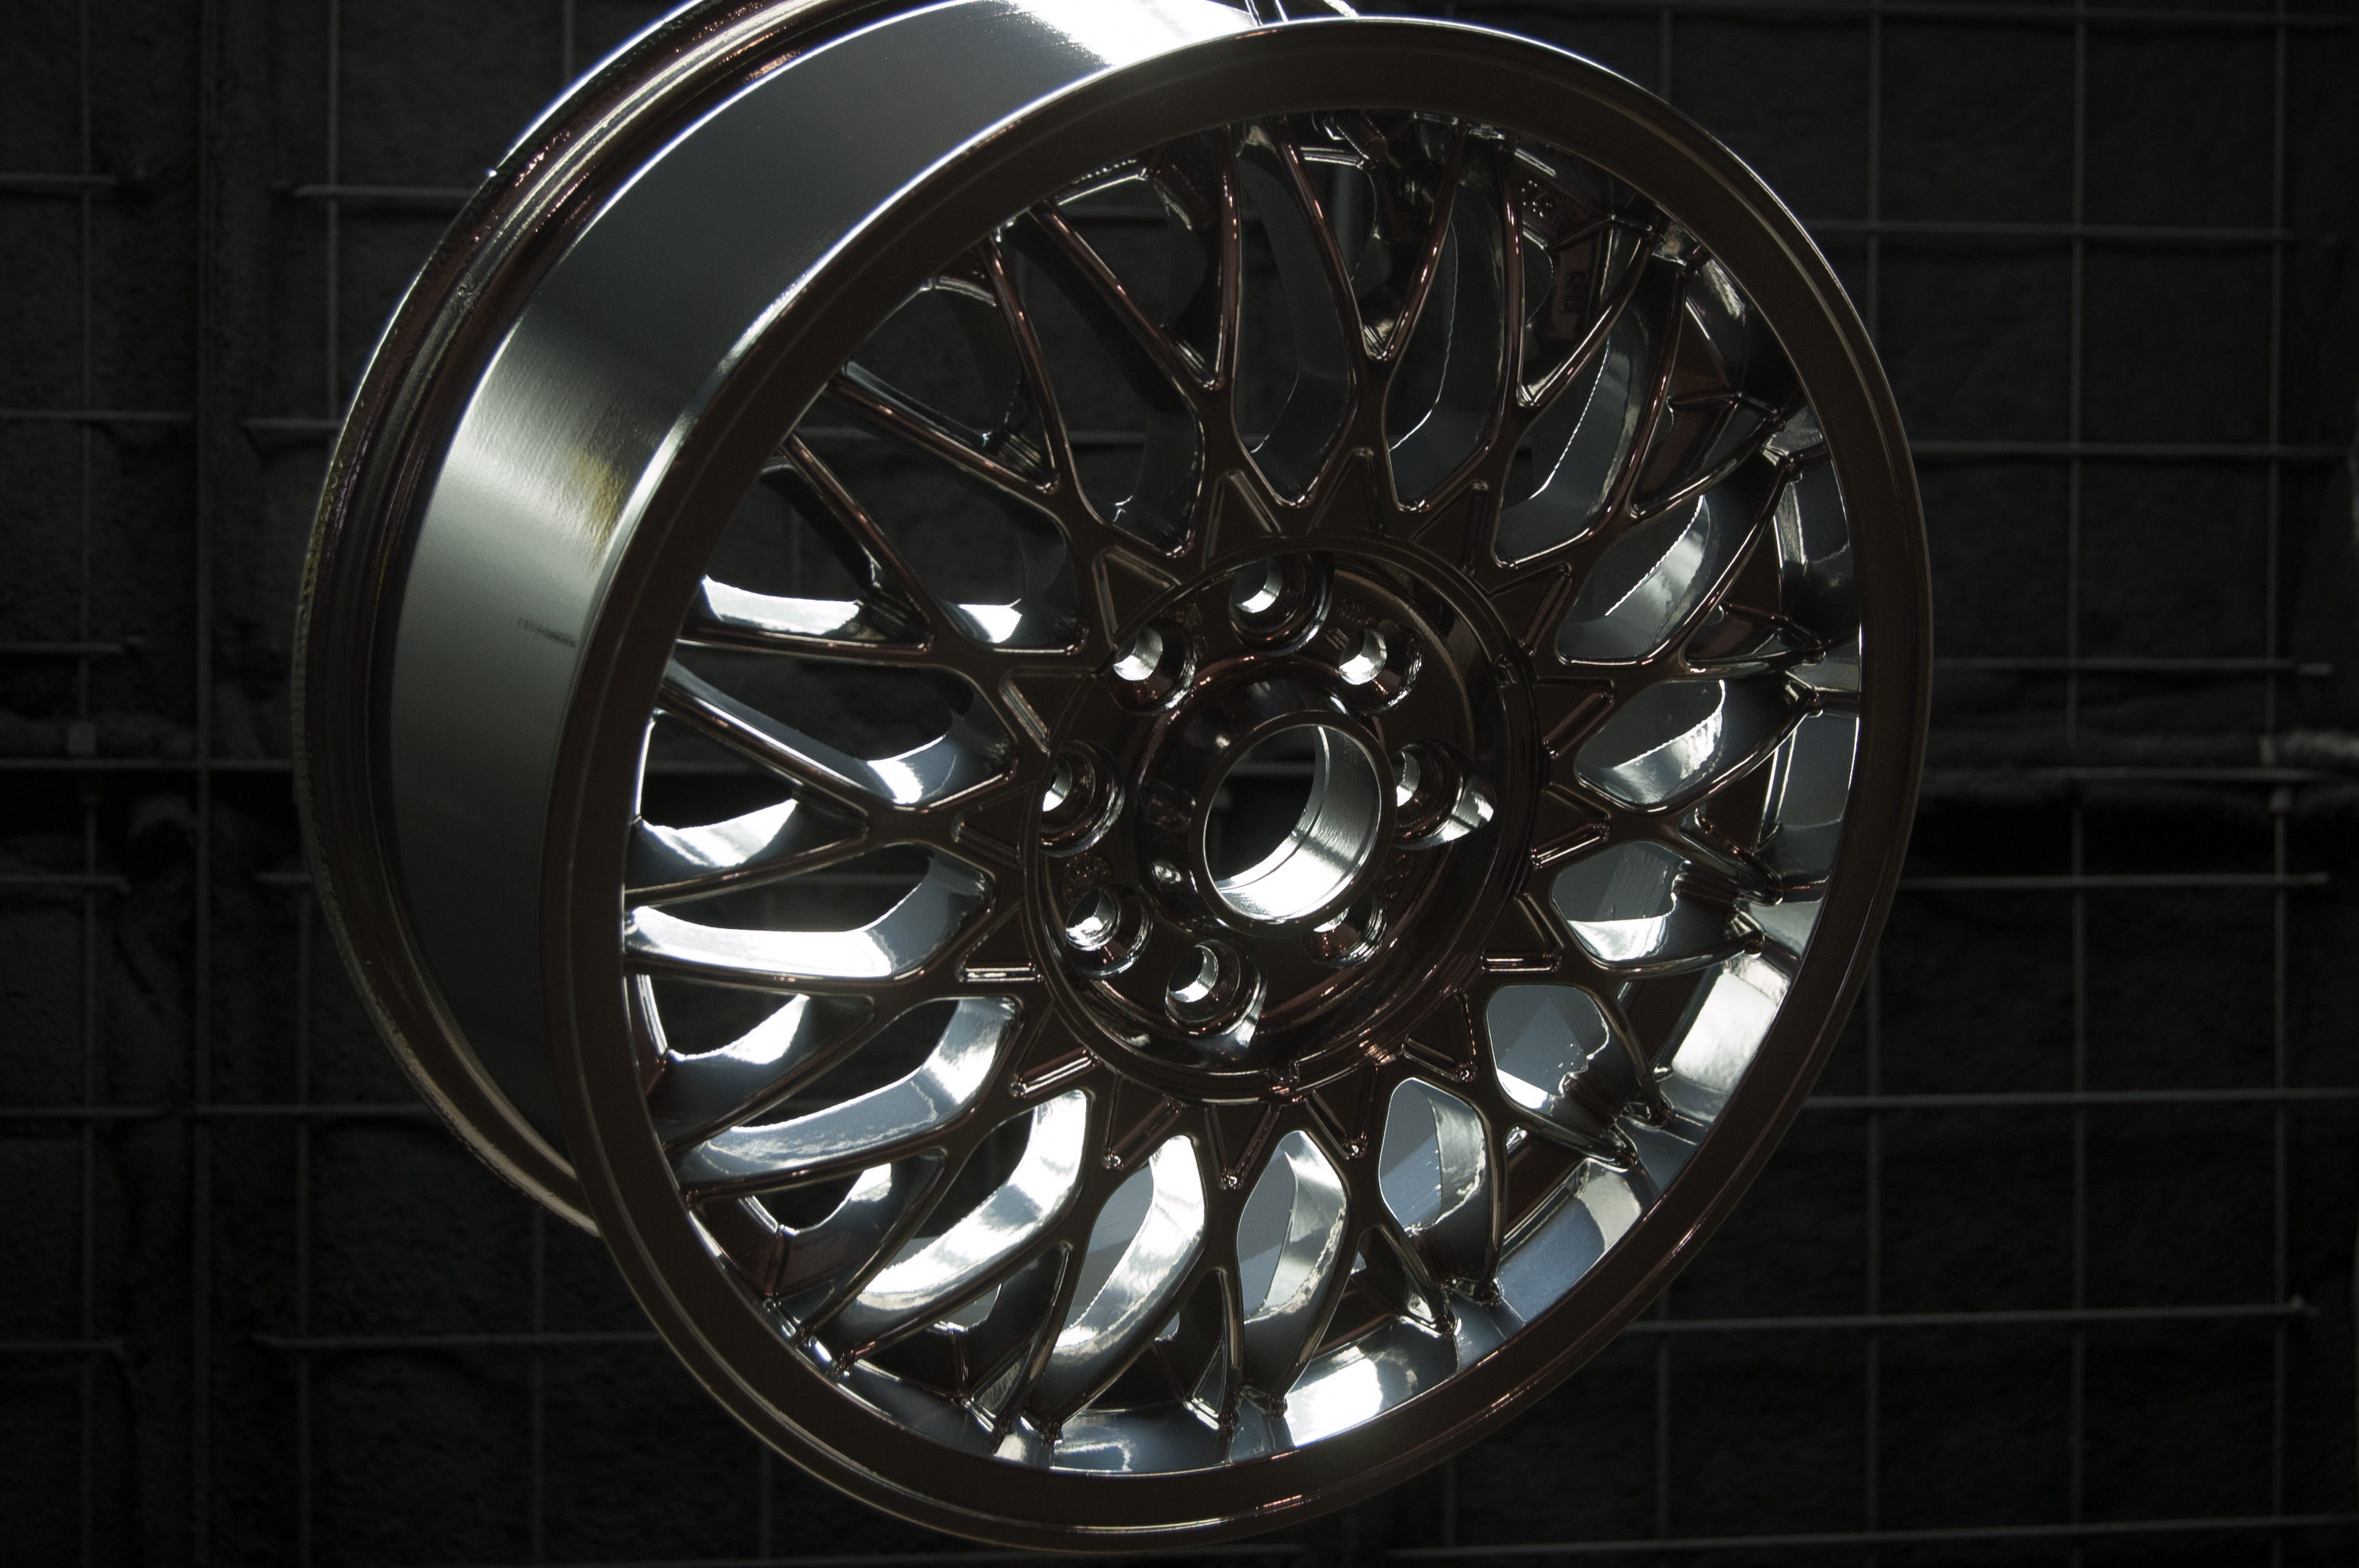 Chrome Powder Coating on Wheel Xtreme Temperature Coatings CT